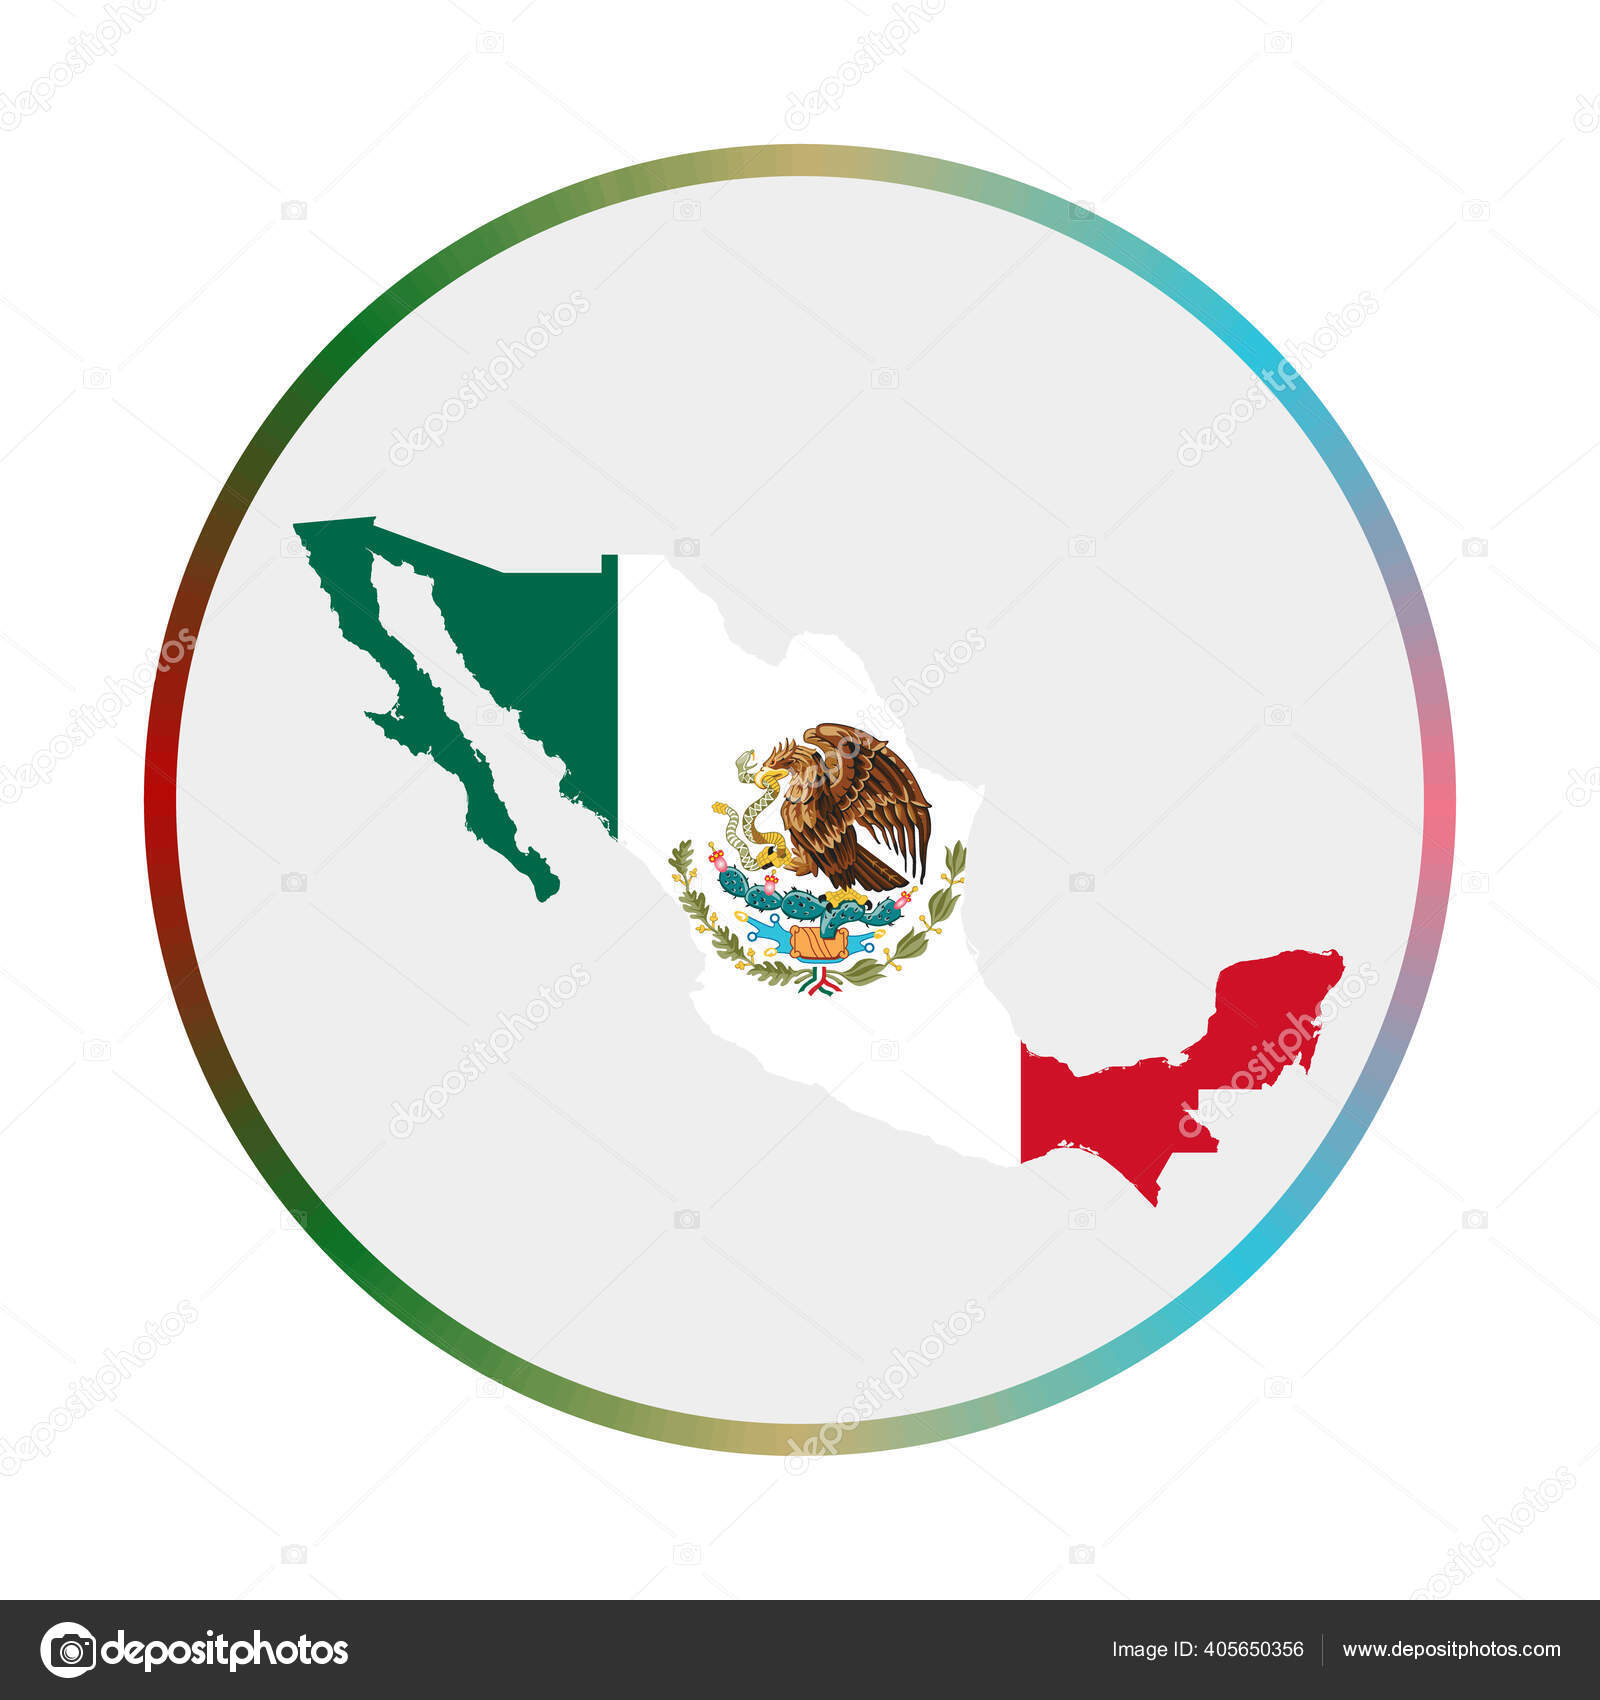 Mexico Icon Shape Of The Country With Mexico Flag Round Sign With Flag Colors Gradient Ring Stok Vektor C Gagarych 405650356